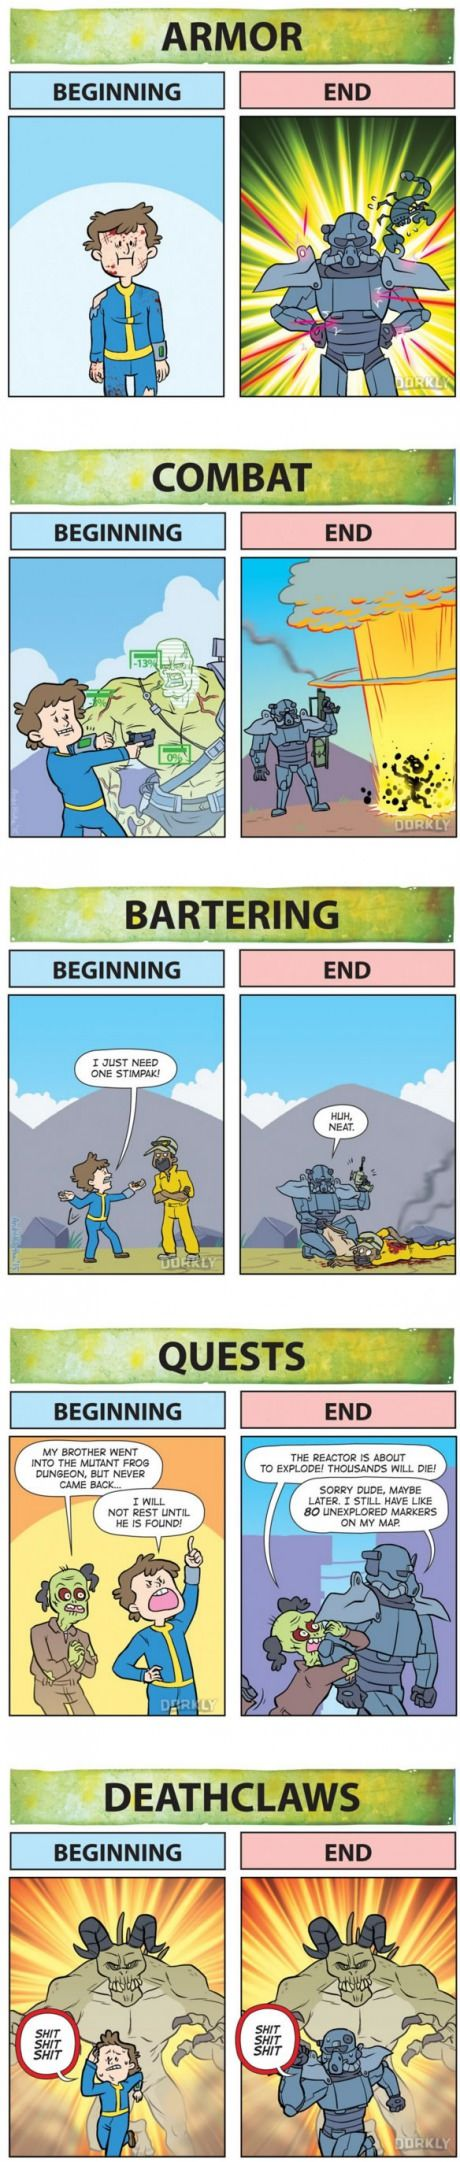 Fallout: Beginning Vs. End (i only have Fallout 3 and New Vegas, i don't have Fallout 4 yet, but I've heard talk that you get pretty decent armor and weapons right at the beginning... Anyone wish to clarify this?)